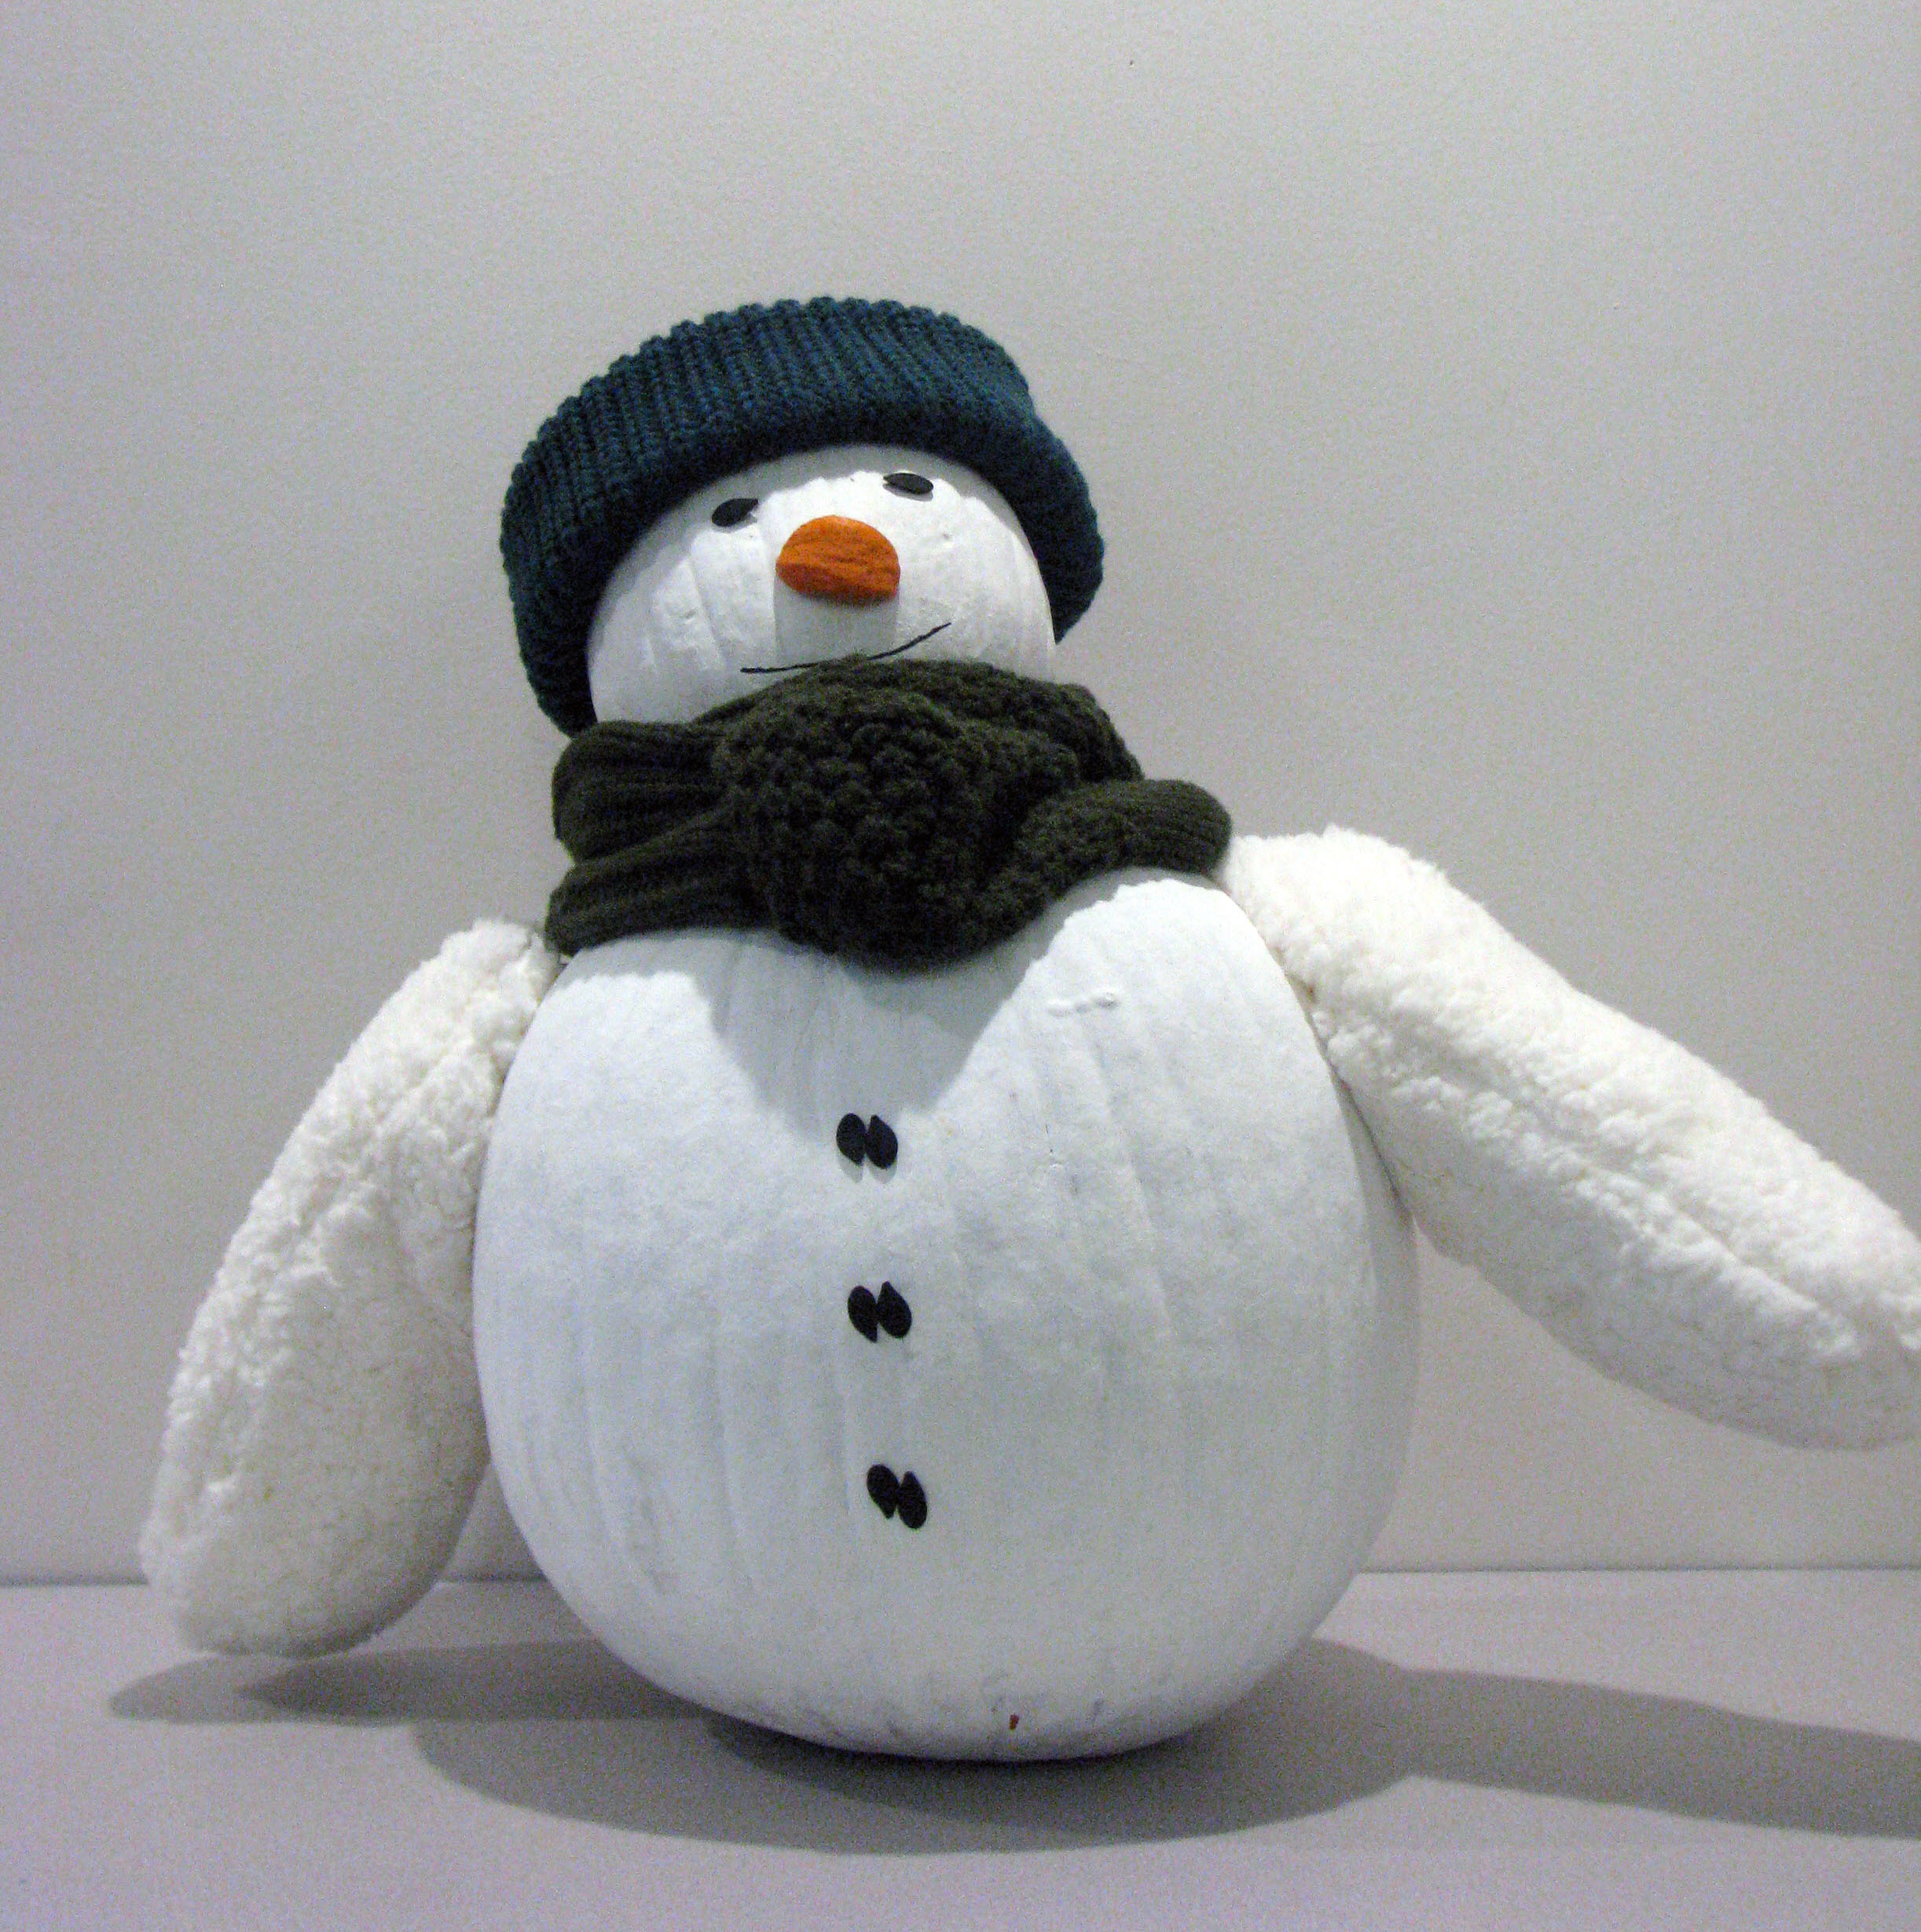 Painted and knitted pumpkin of a snowman